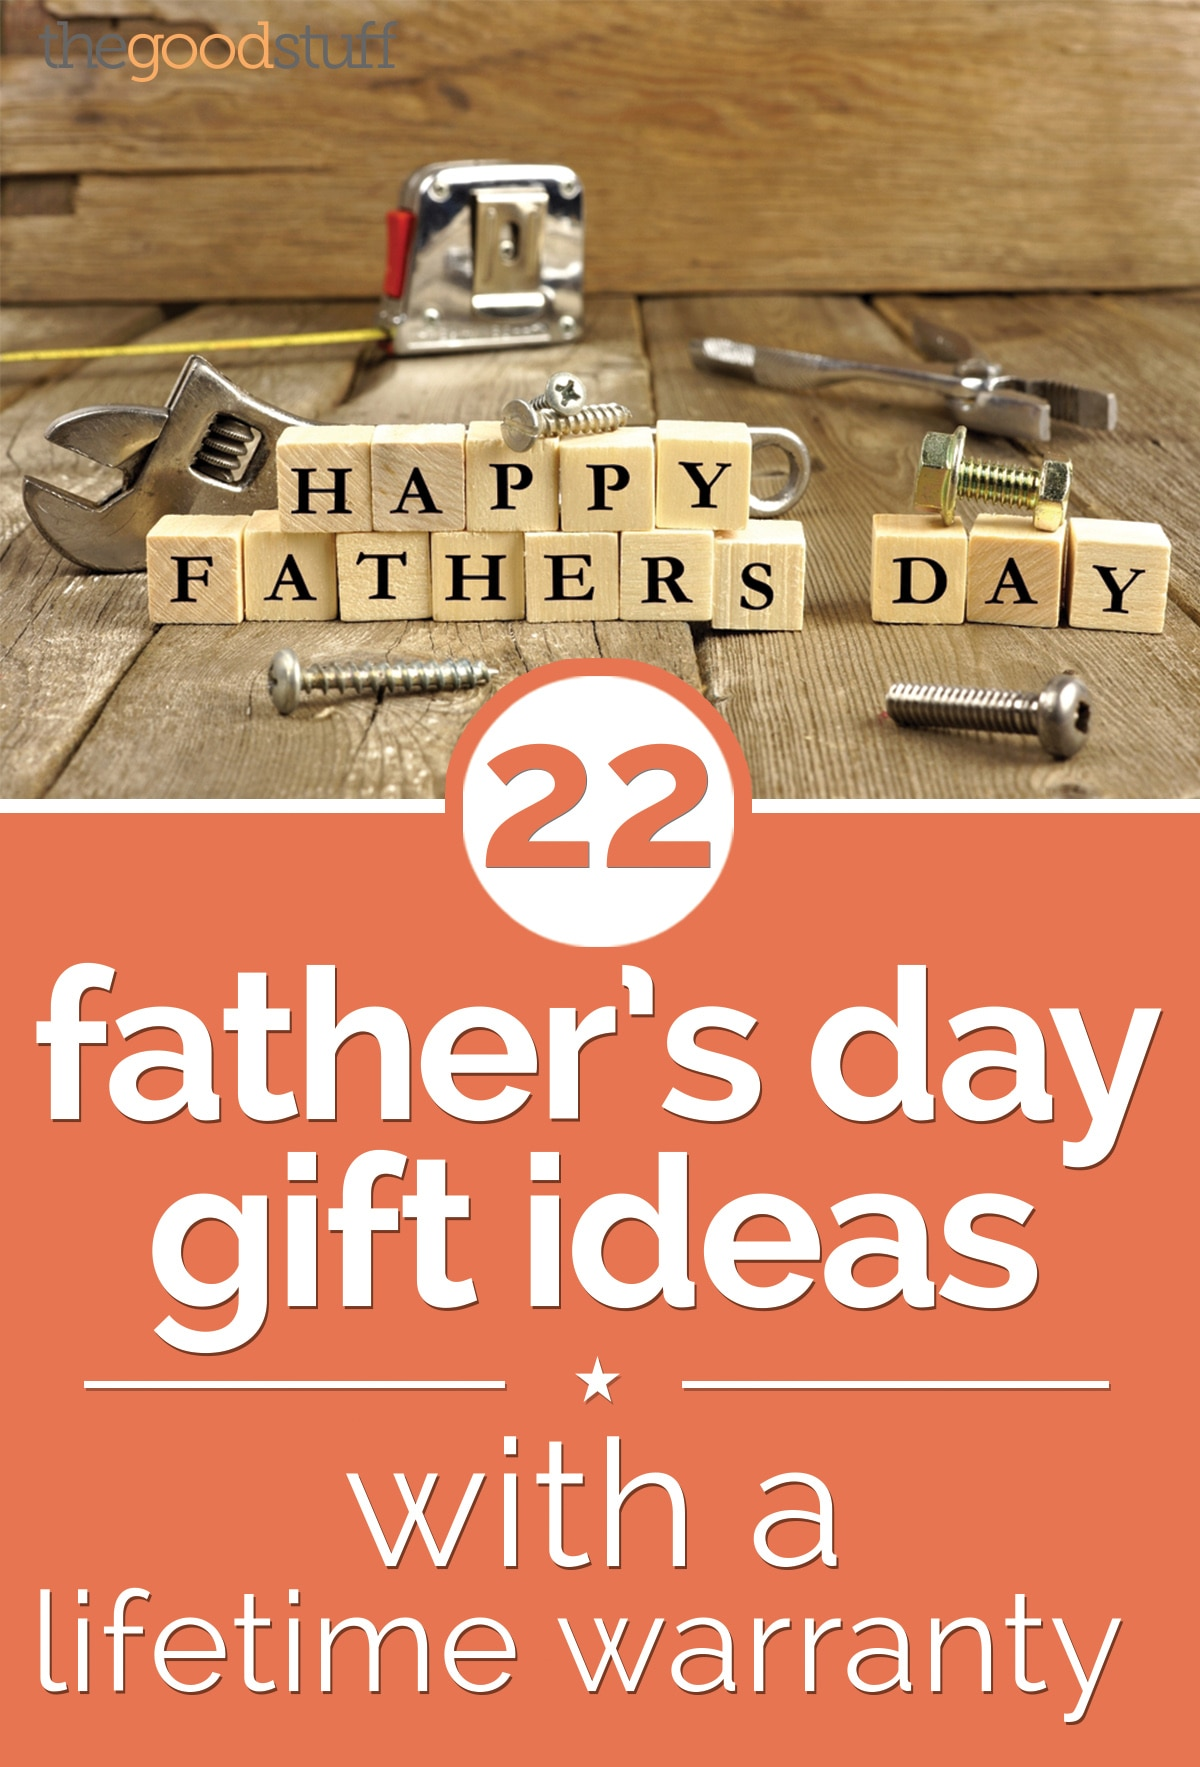 22 Father's Day Gift Ideas with a Lifetime Warranty | thegoodstuff